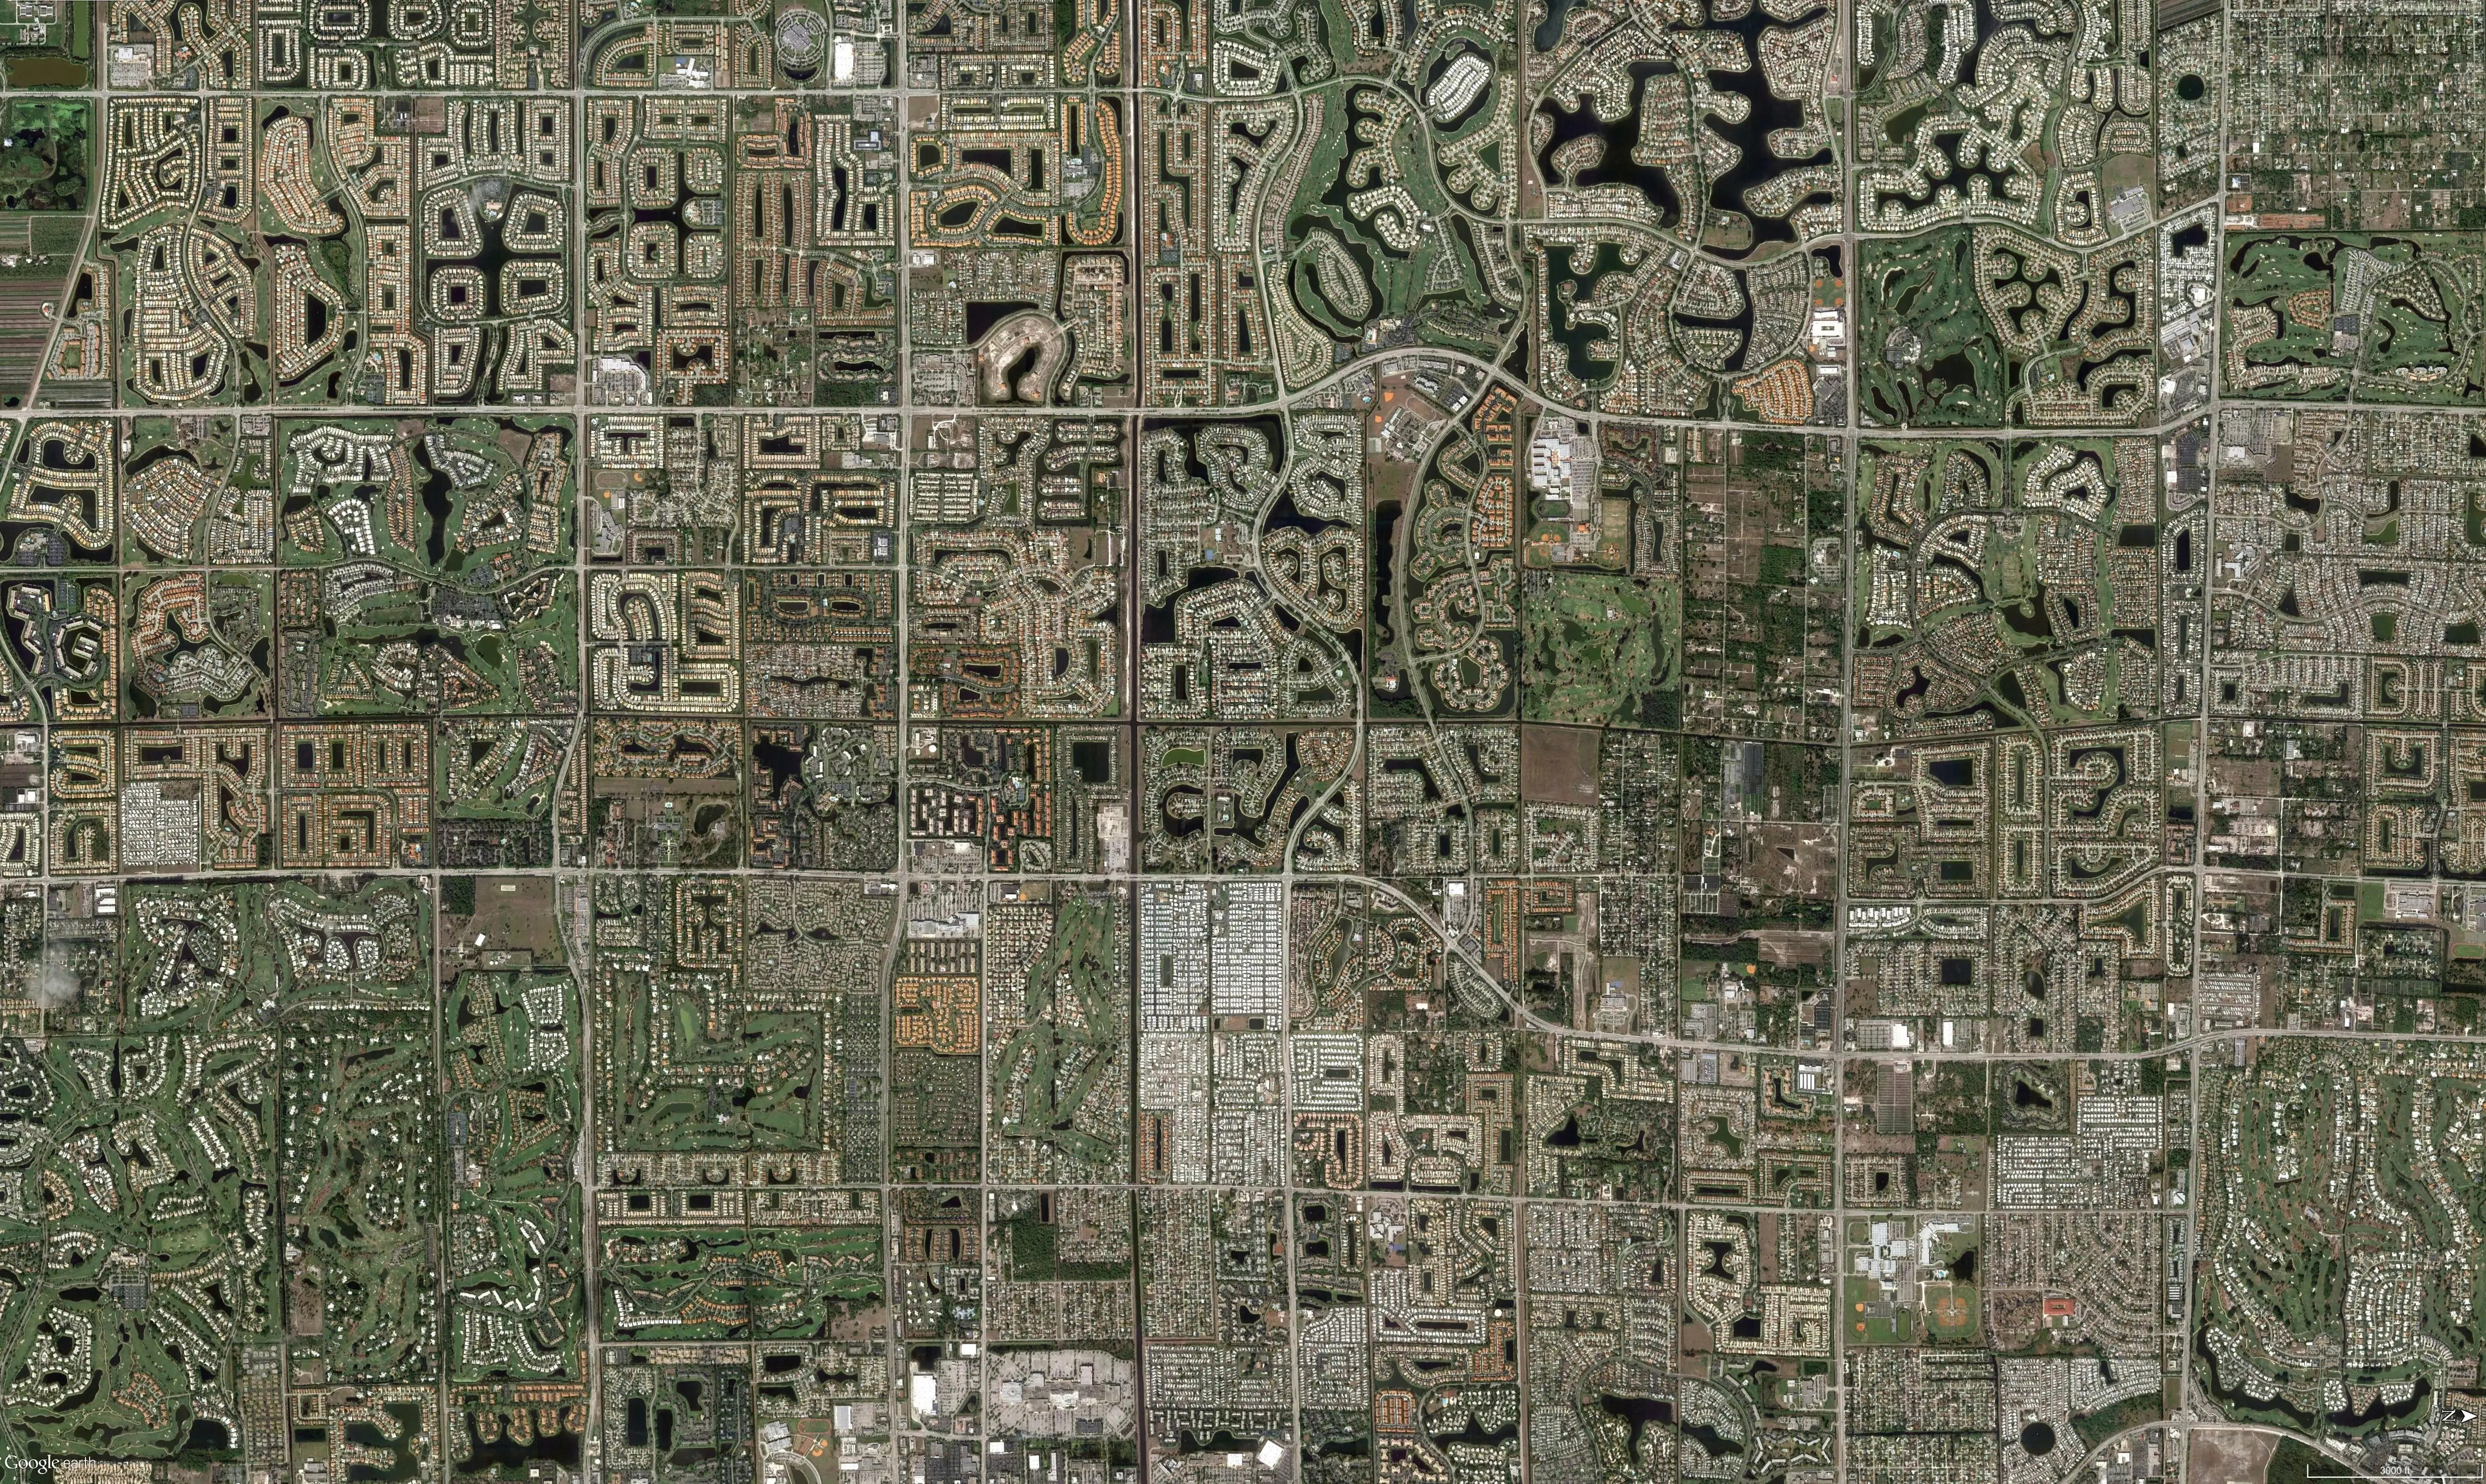 This view from above of the landscape outside Miami, Florida, shows 13 golf courses amongst tract homes on the edge of the Everglades. The area has suffered from depleting water resources, as well as a surge in people moving to the area and developing the land.